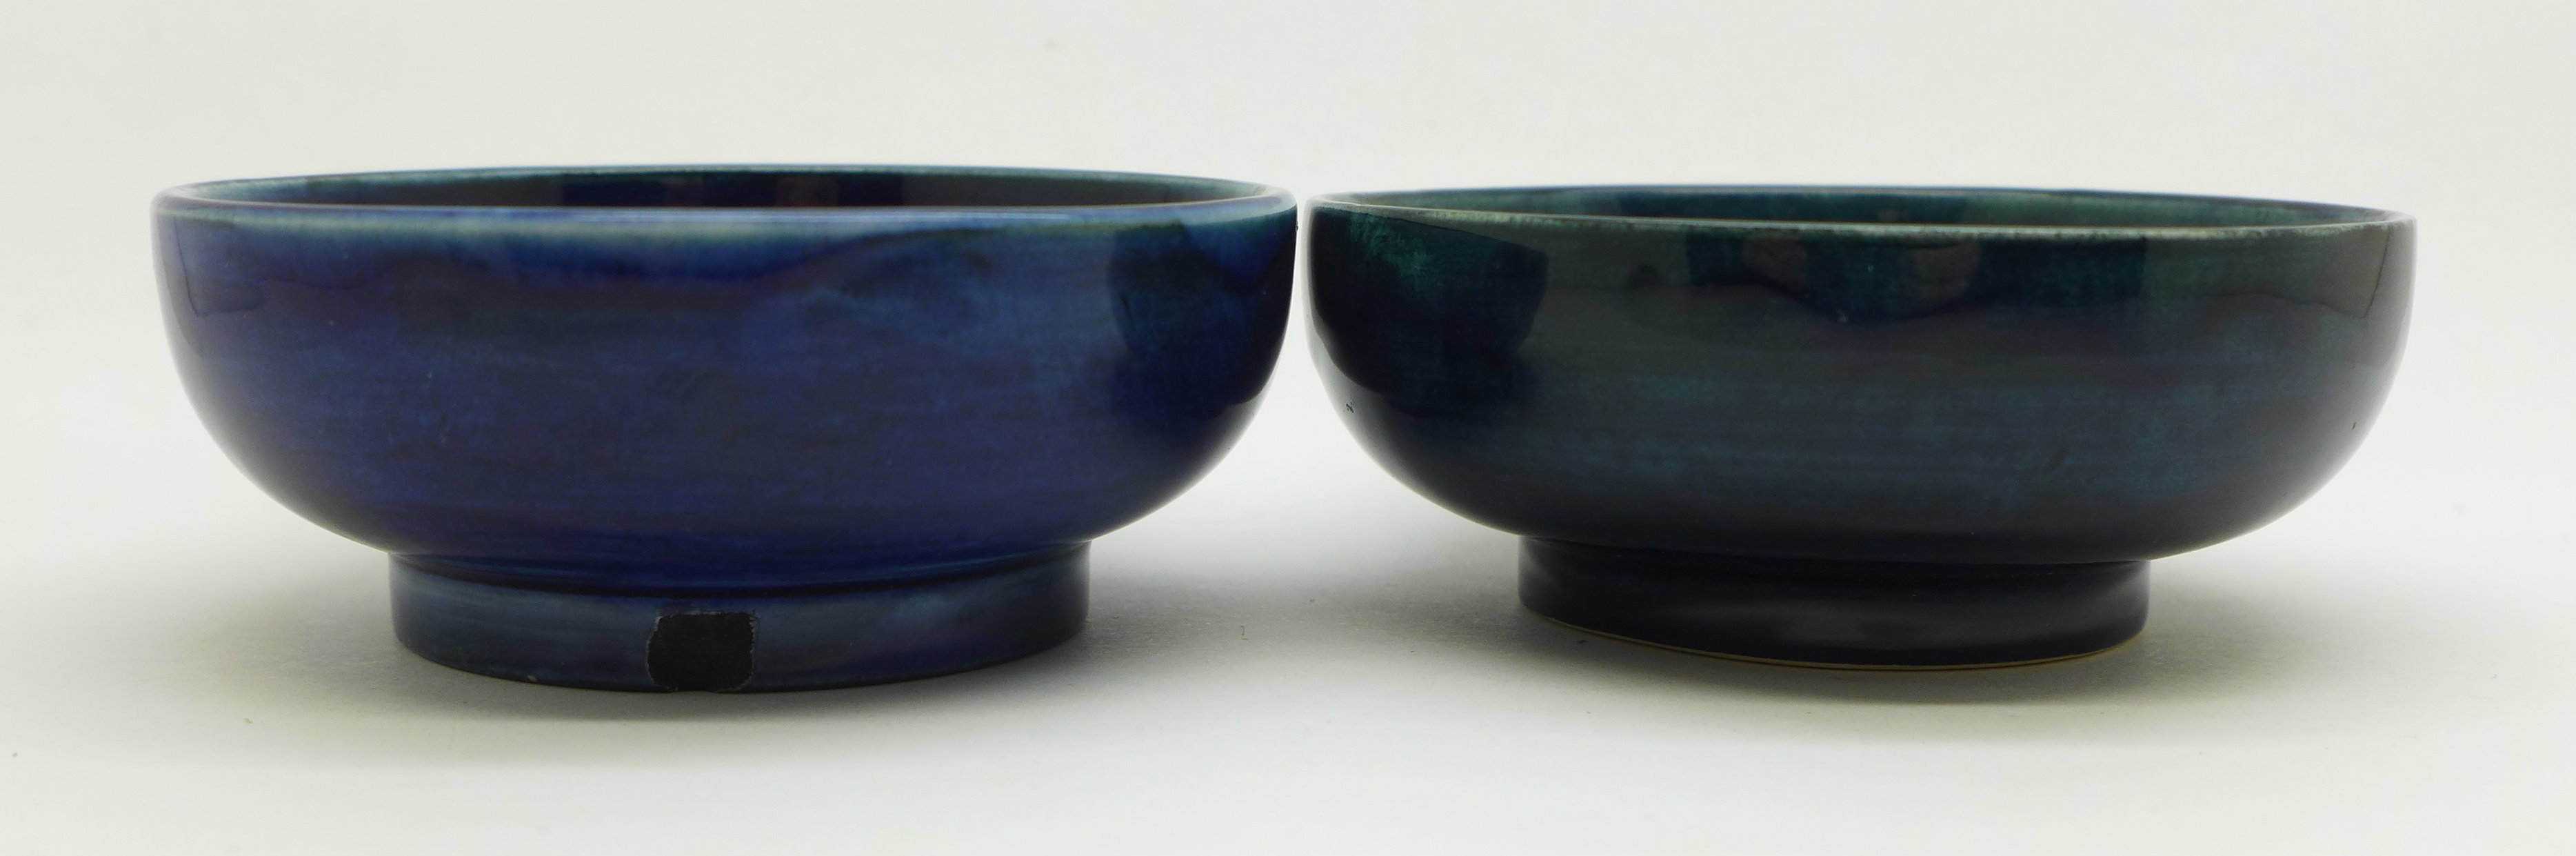 Two Moorcroft dishes, orchid pattern a/f, chip on the side of the base, 72mm, (156,160) - Image 3 of 8